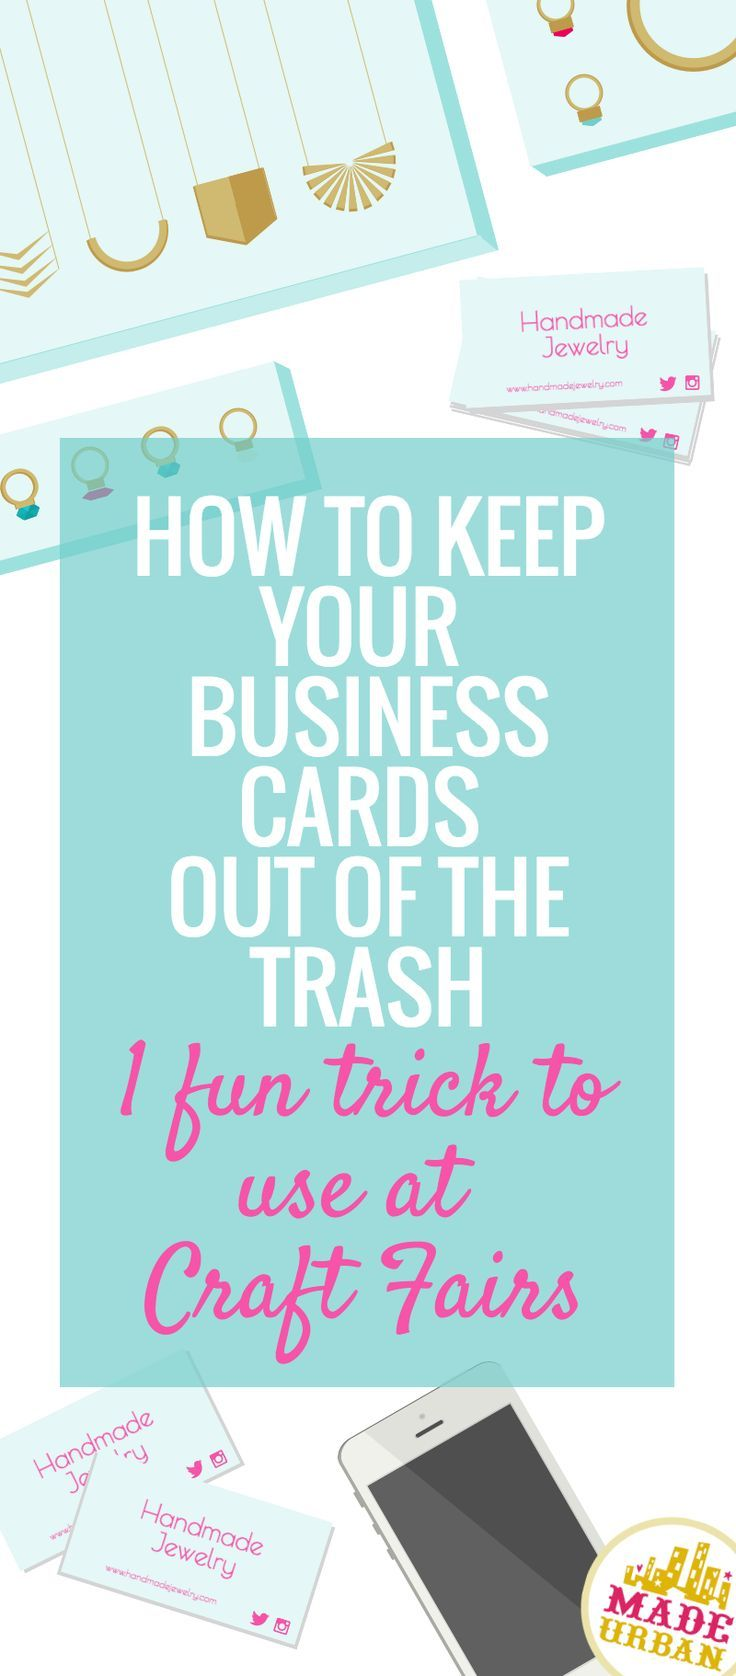 How to Keep your Business Cards Out of the Trash | Craft fairs ...